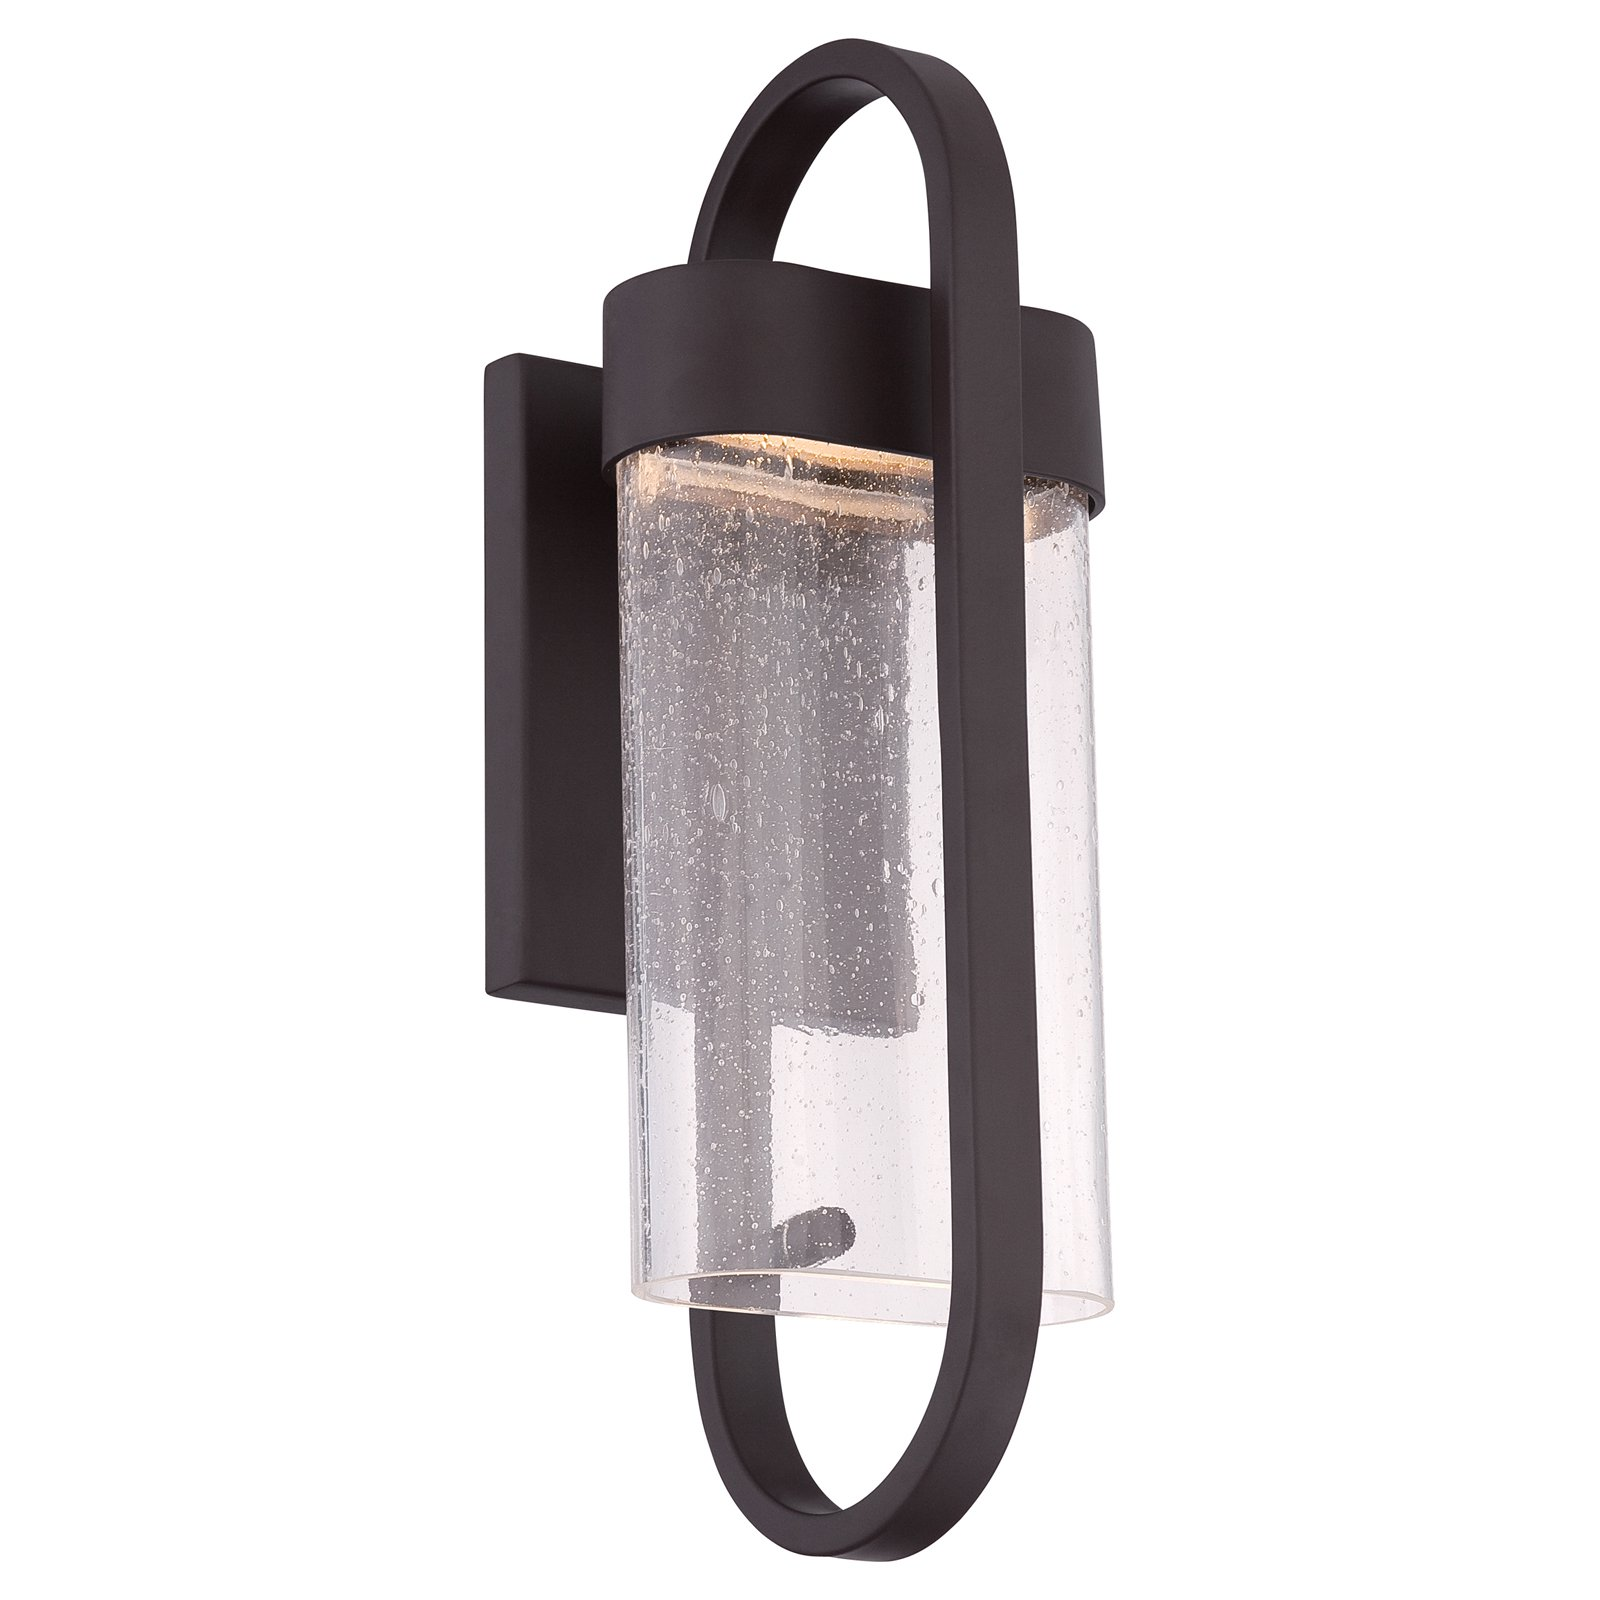 Quoizel Alto ALT8405WT Wall Sconce by Quoizel